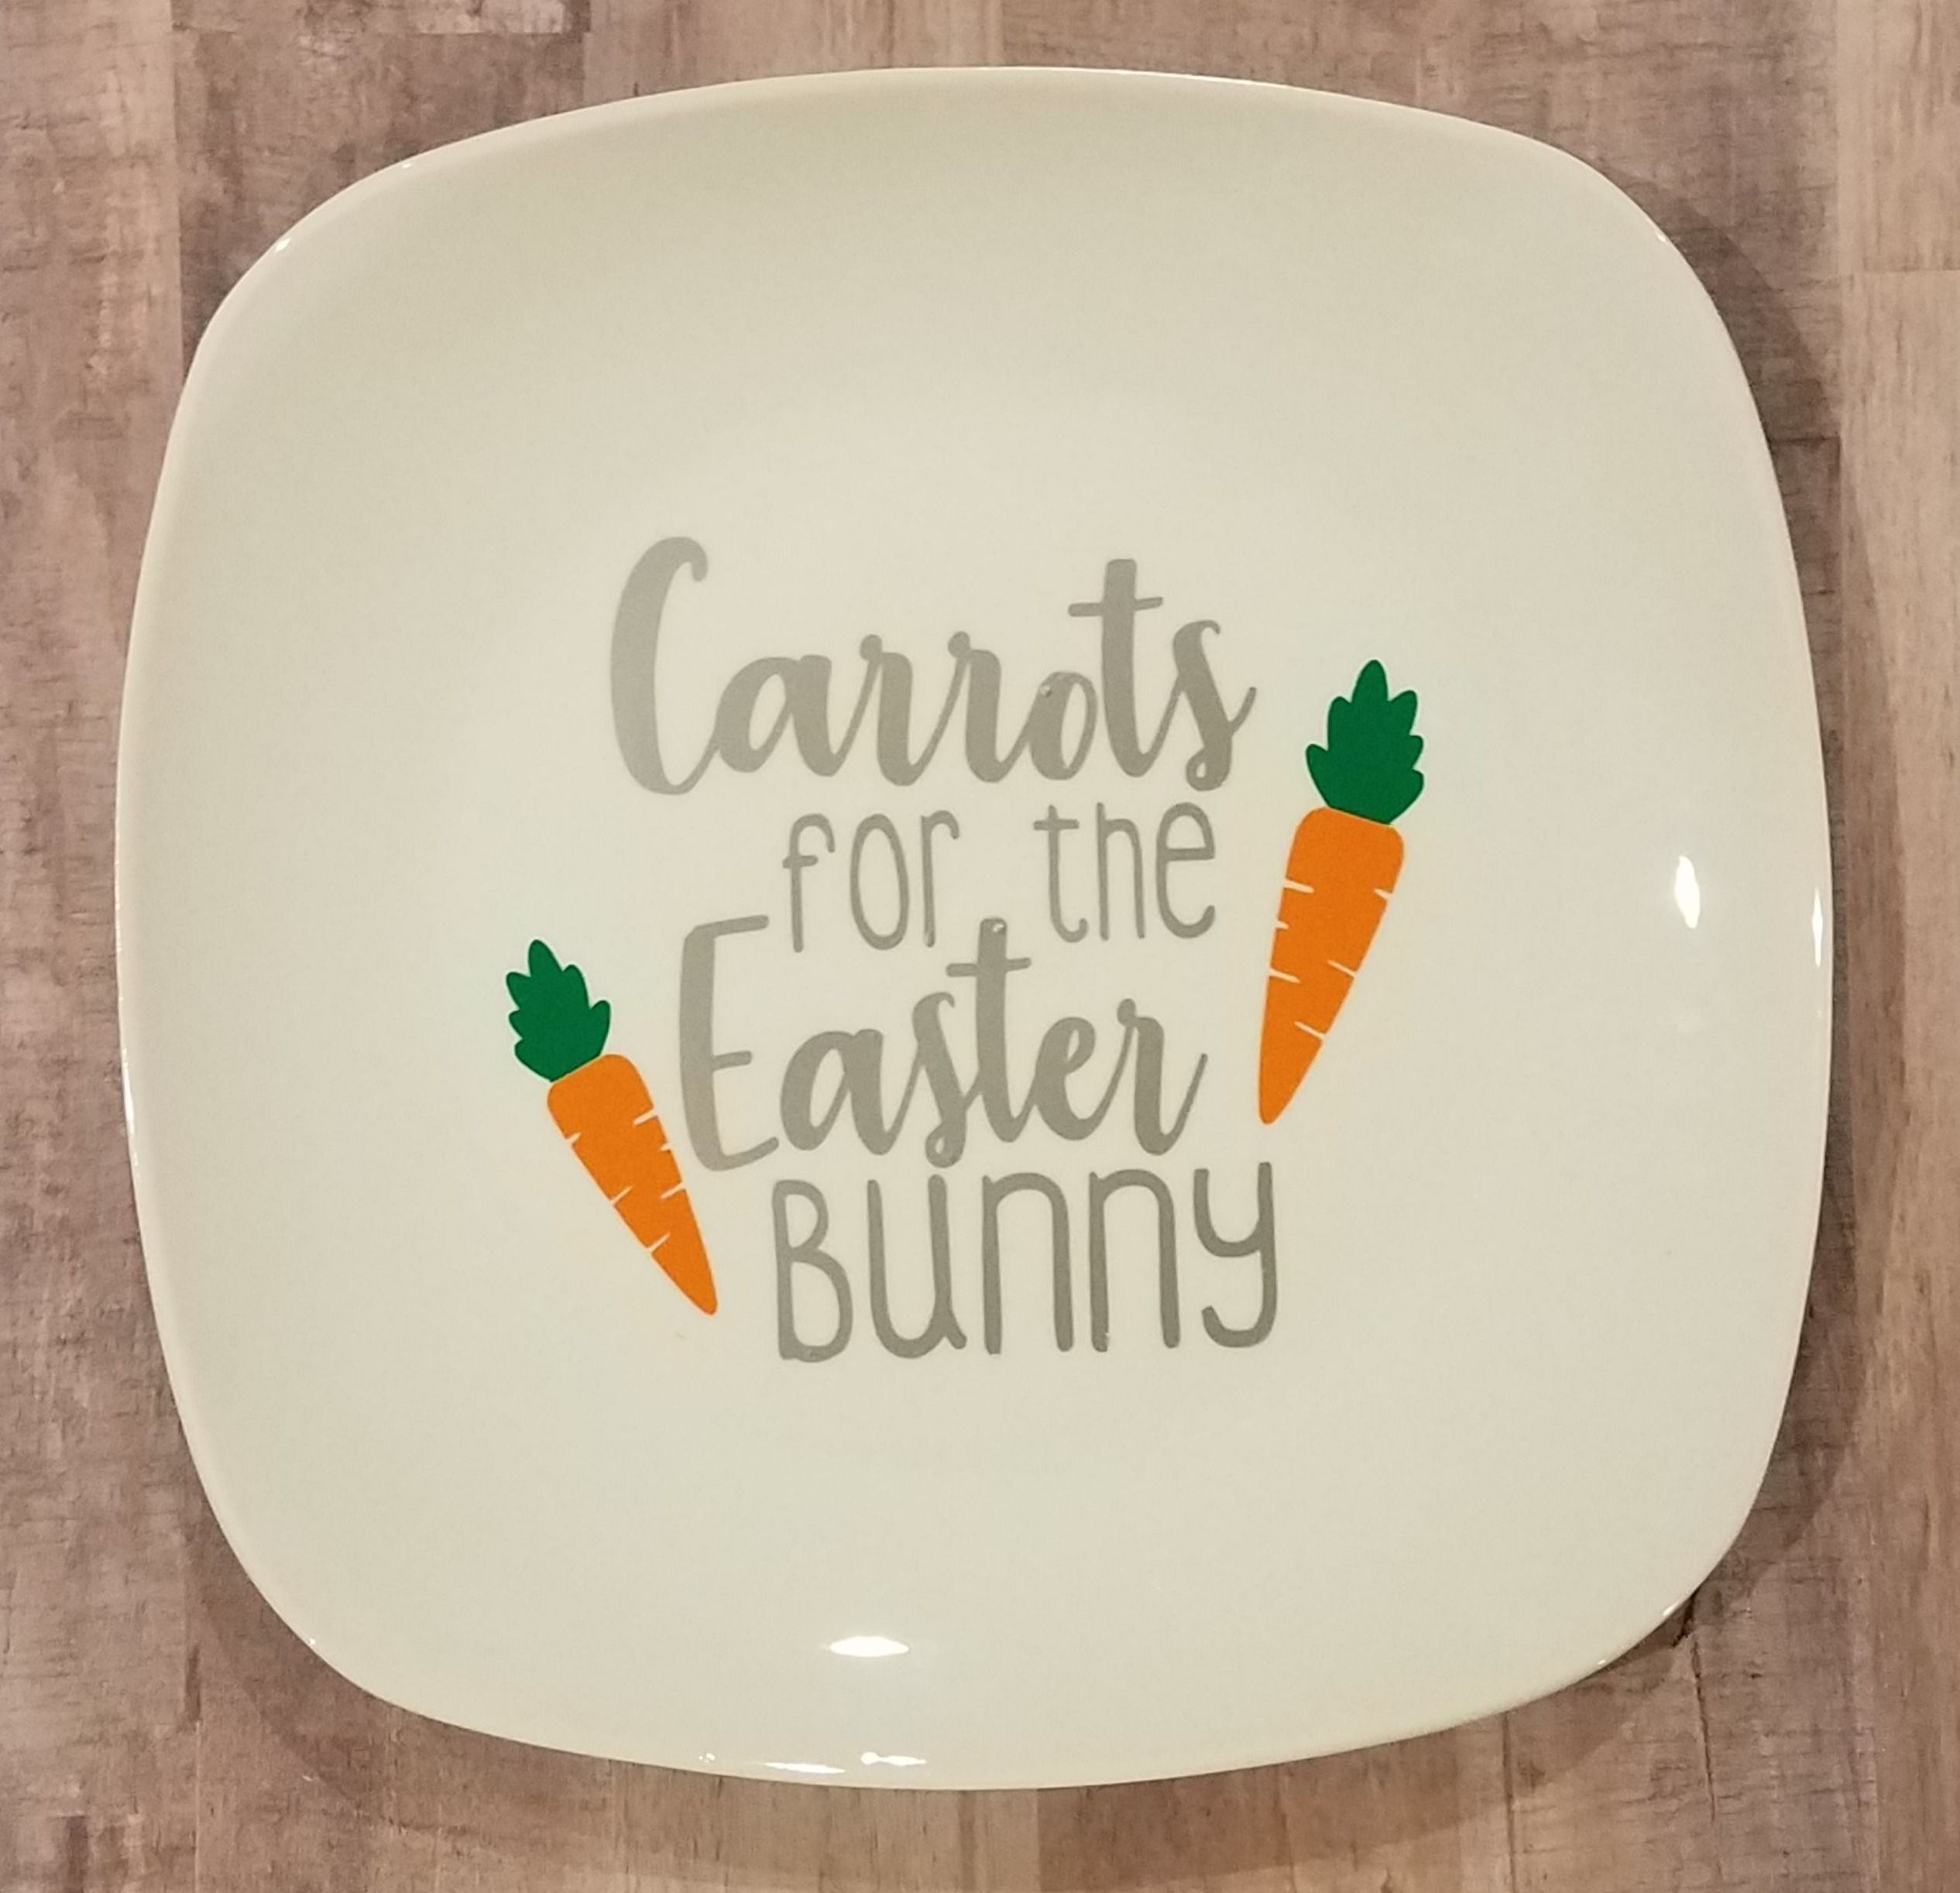 41+ Carrots for the easter bunny plate ideas in 2021